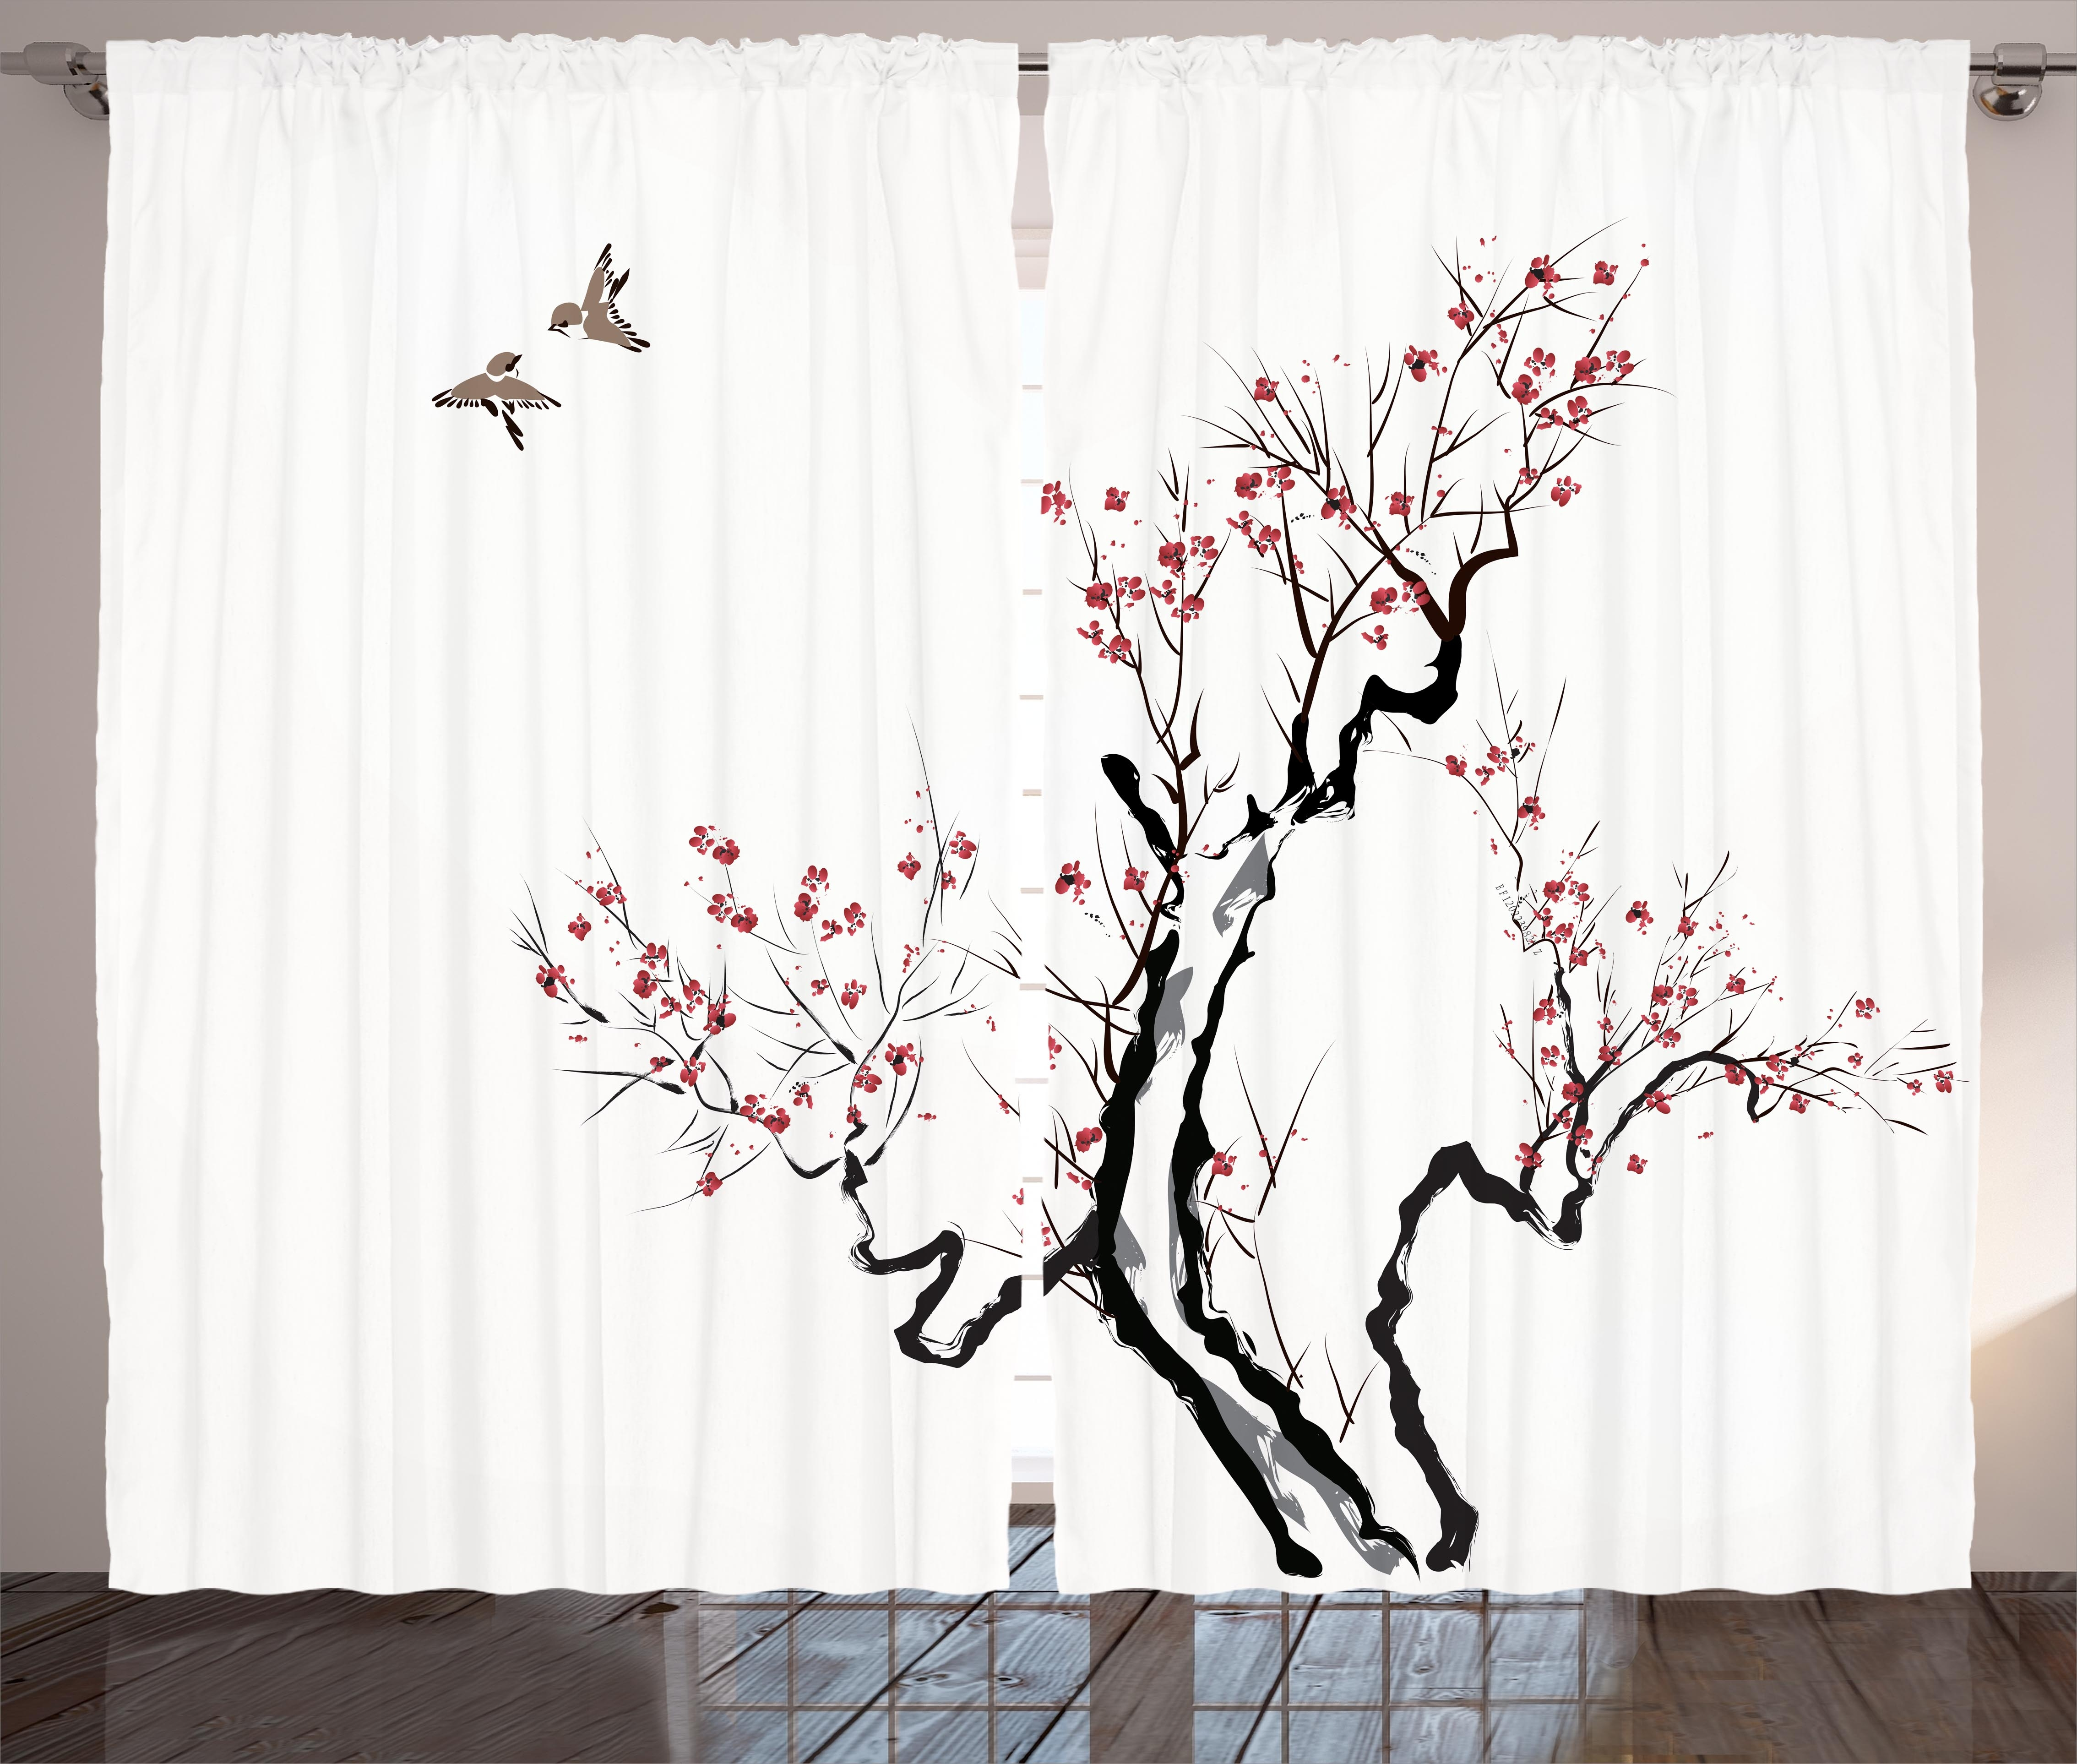 Anese Style Shower Curtain Migrant Resource Network